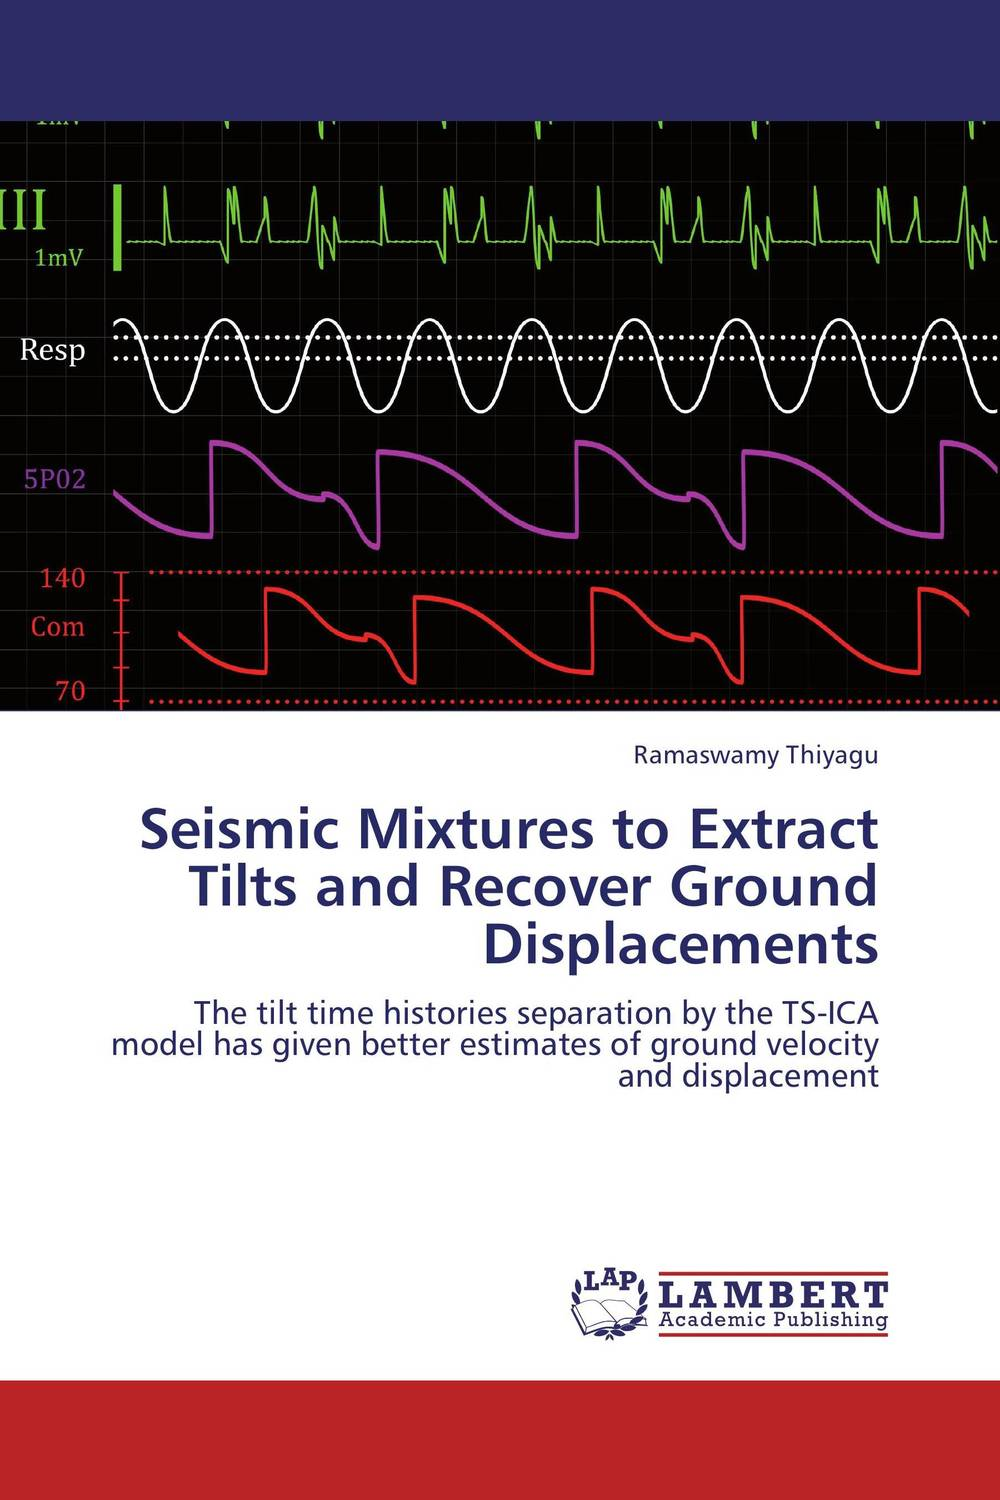 Seismic Mixtures to Extract Tilts and Recover Ground Displacements программа gaussian купить